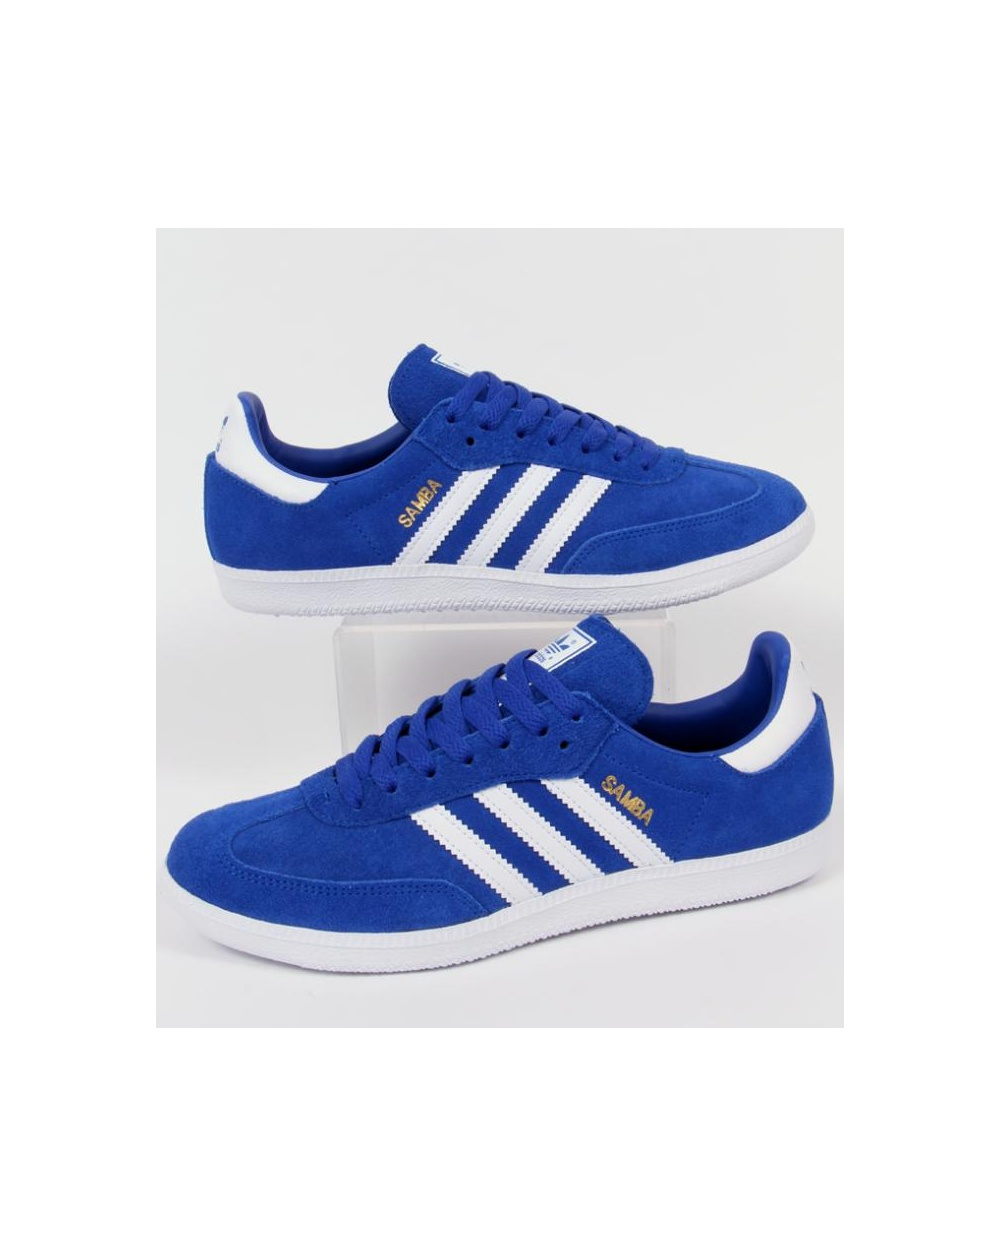 arriving wholesale online wide varieties Adidas Samba Trainers Bold Blue/White